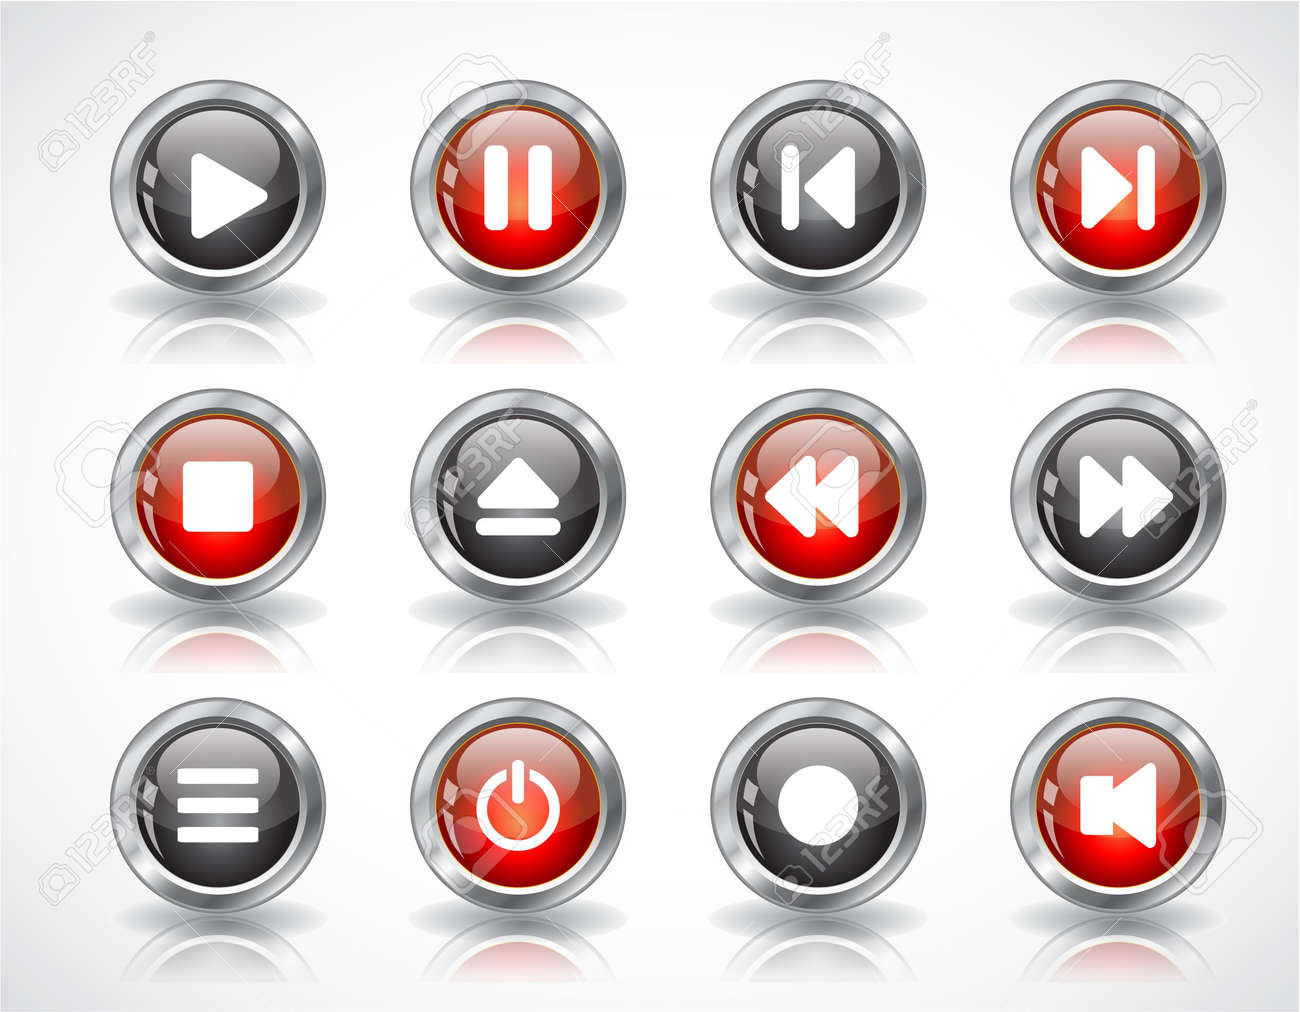 media buttons. Stock Photo - 7300570